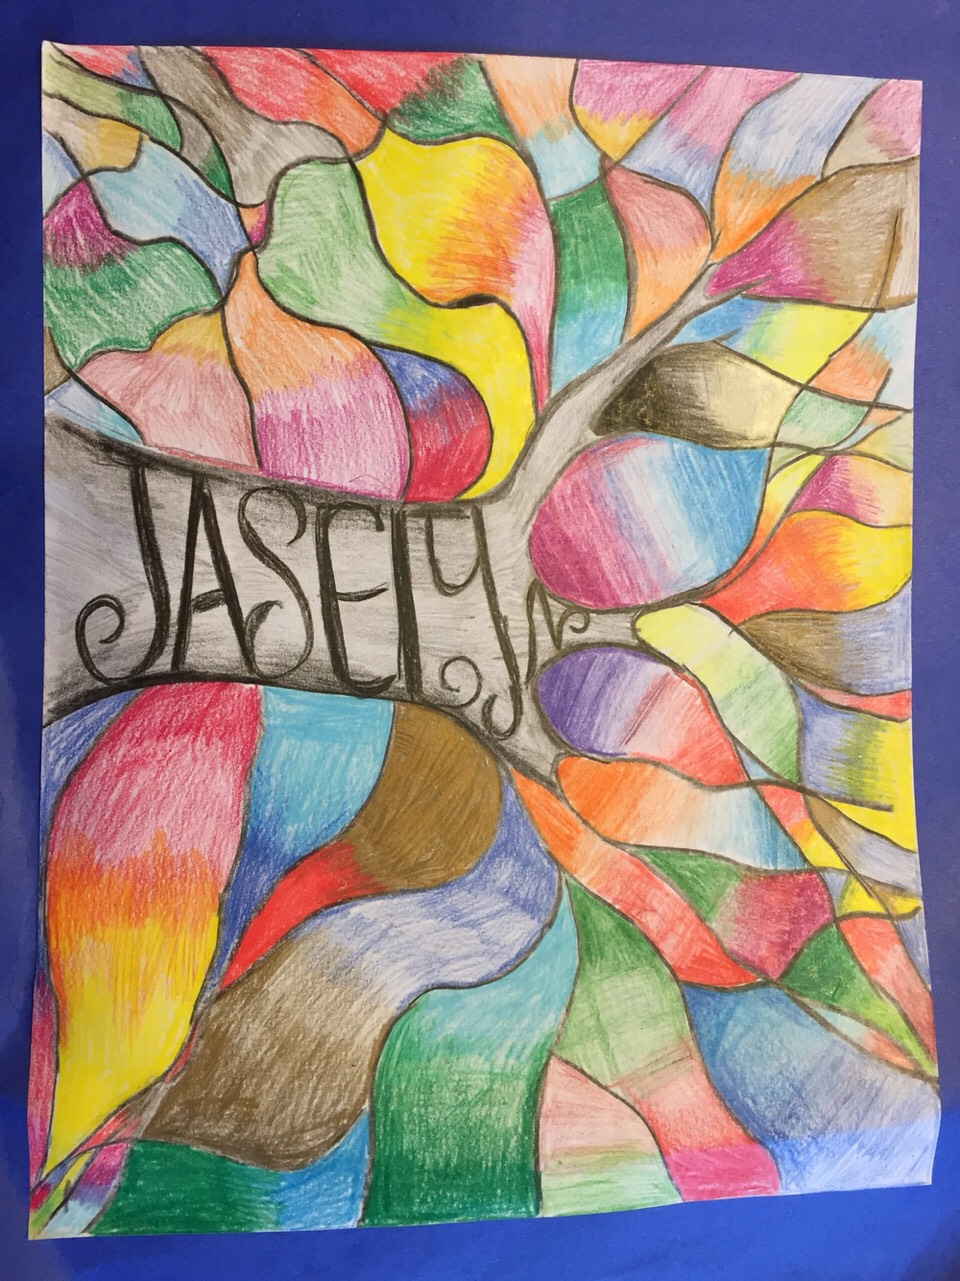 I made this in talented art it is a tree with lots of colors and my name in it it is easy to do.